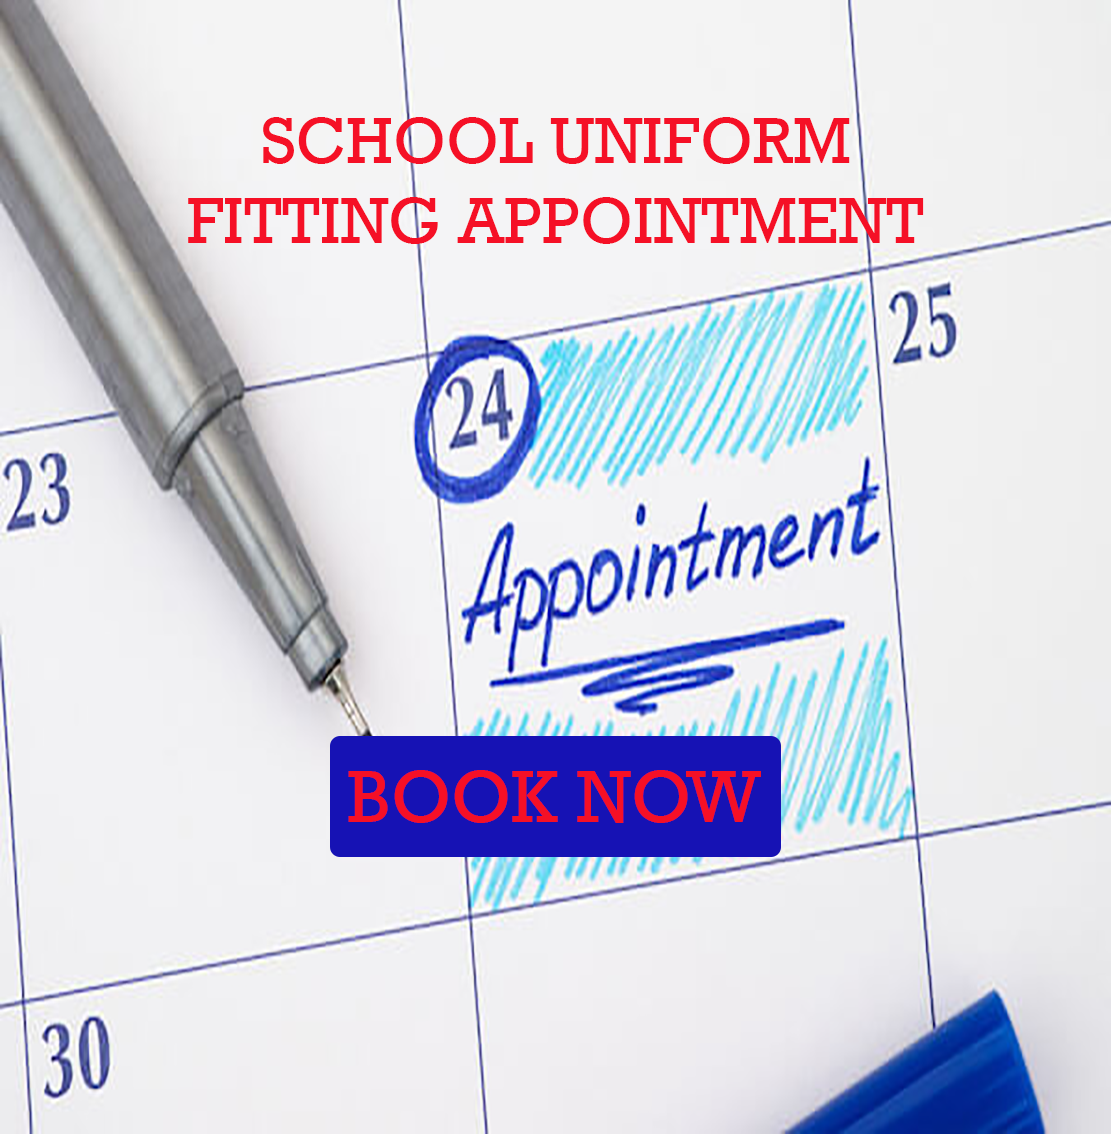 Uniform Appointments